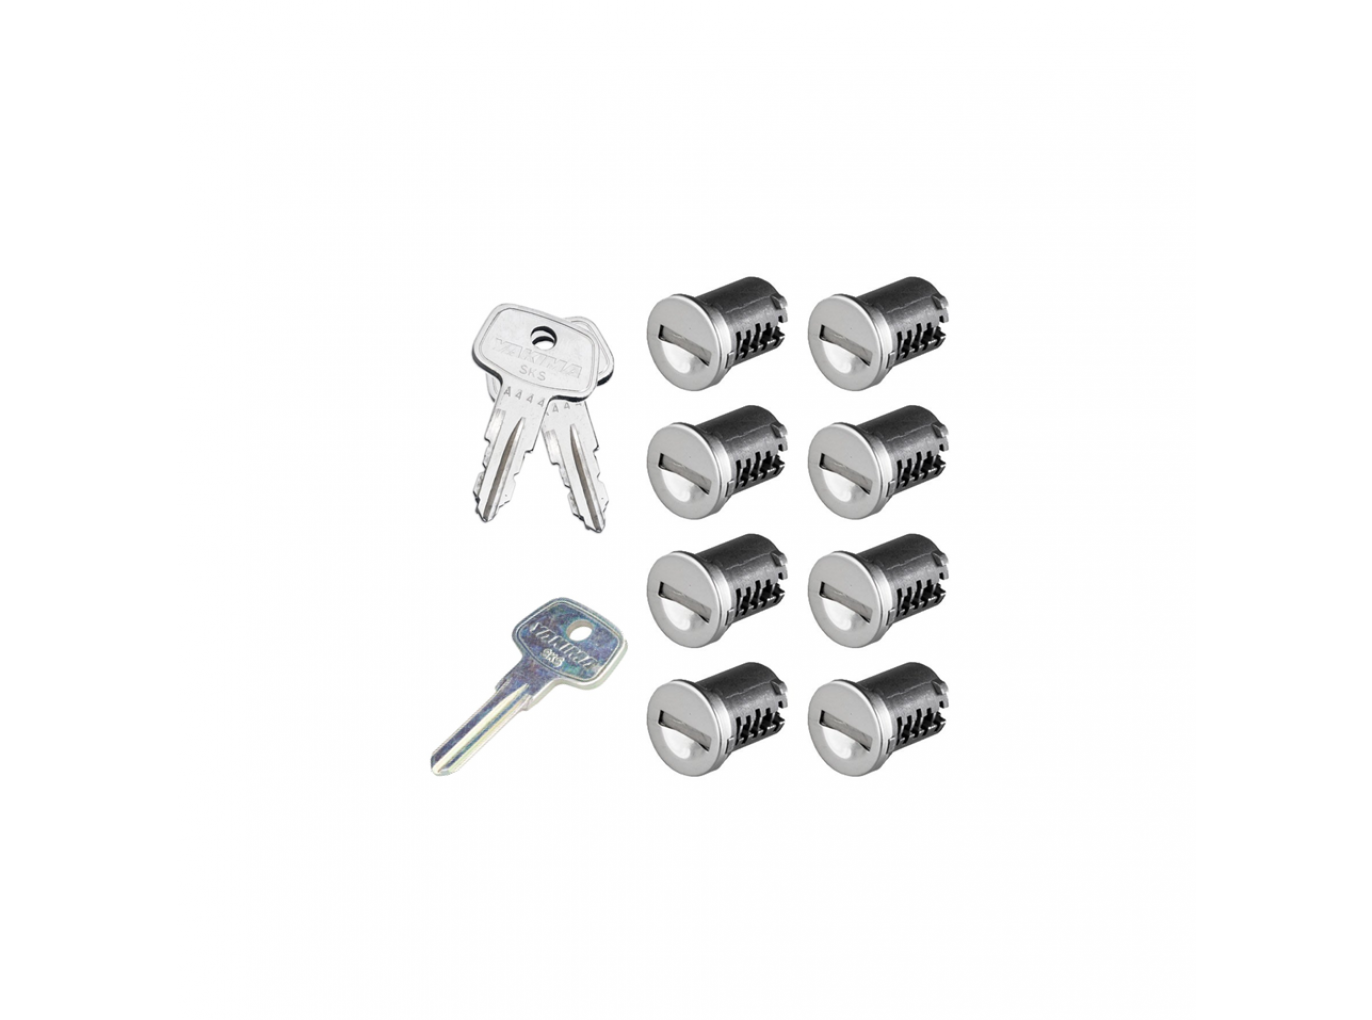 SKS Lock Cores with Keys